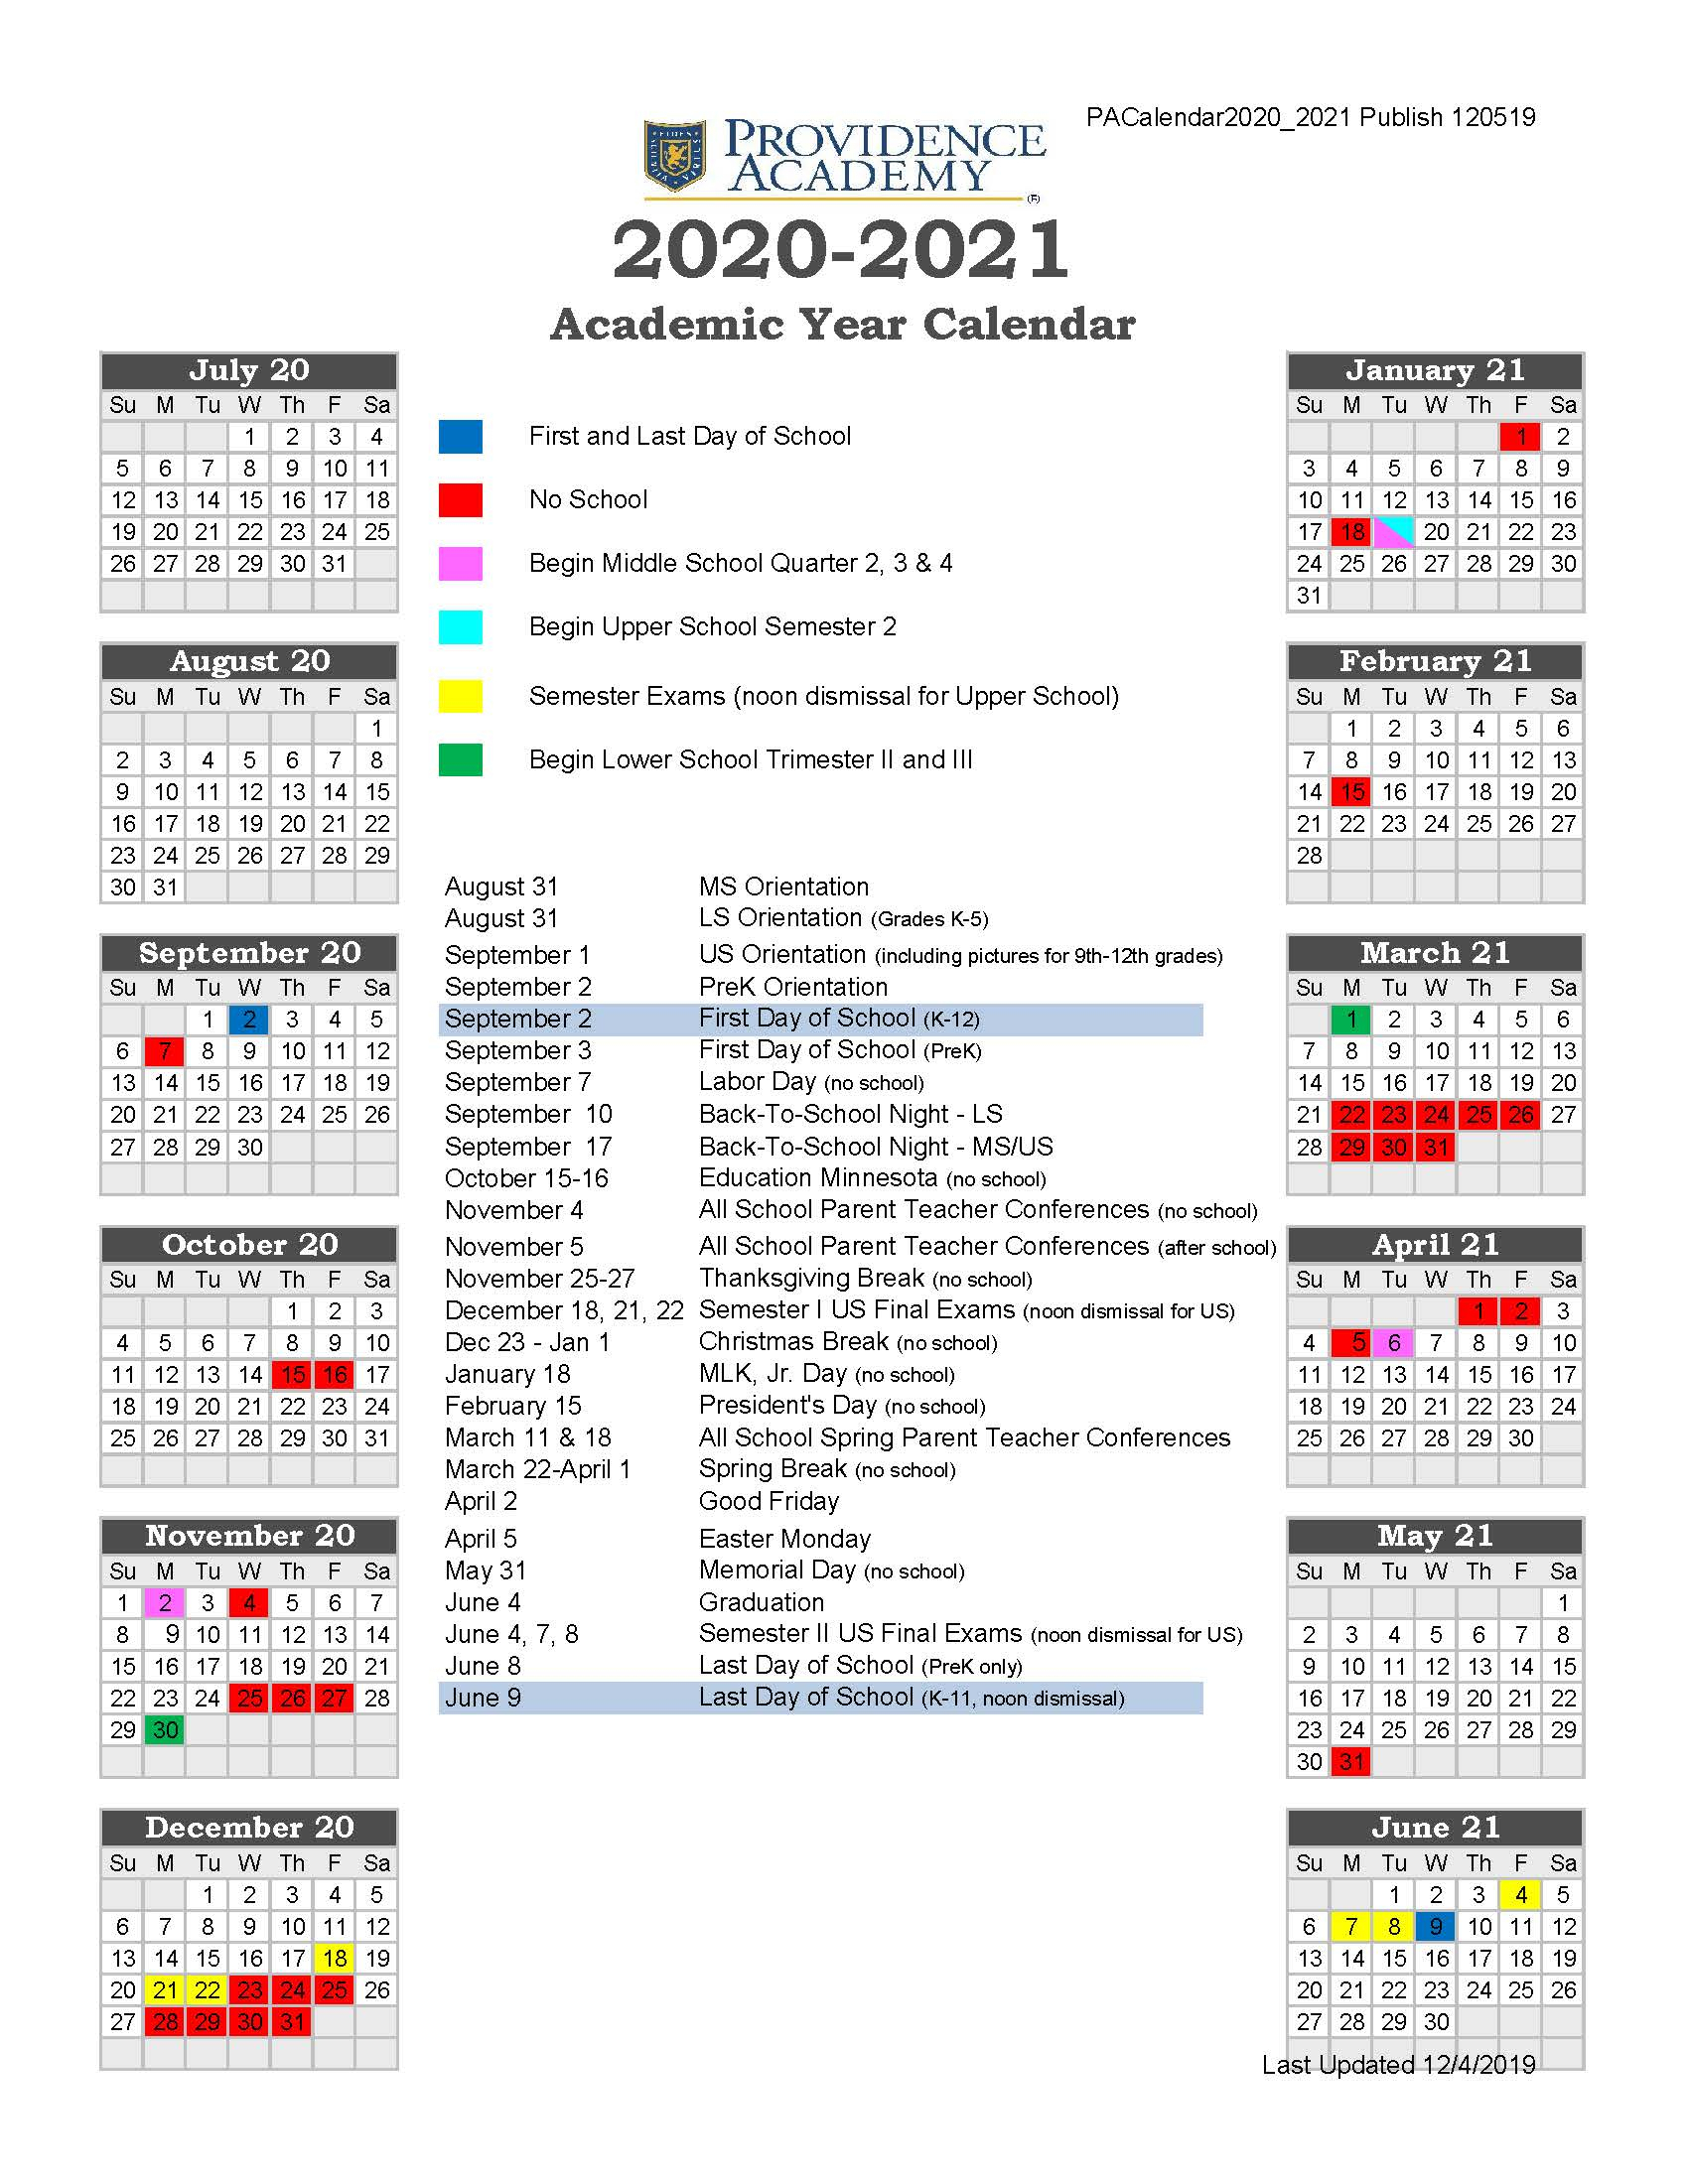 Gsu Fall 2021 Calendar | Printable Calendar 2020 2021 Throughout When Is Spring Break For Lake County Fl